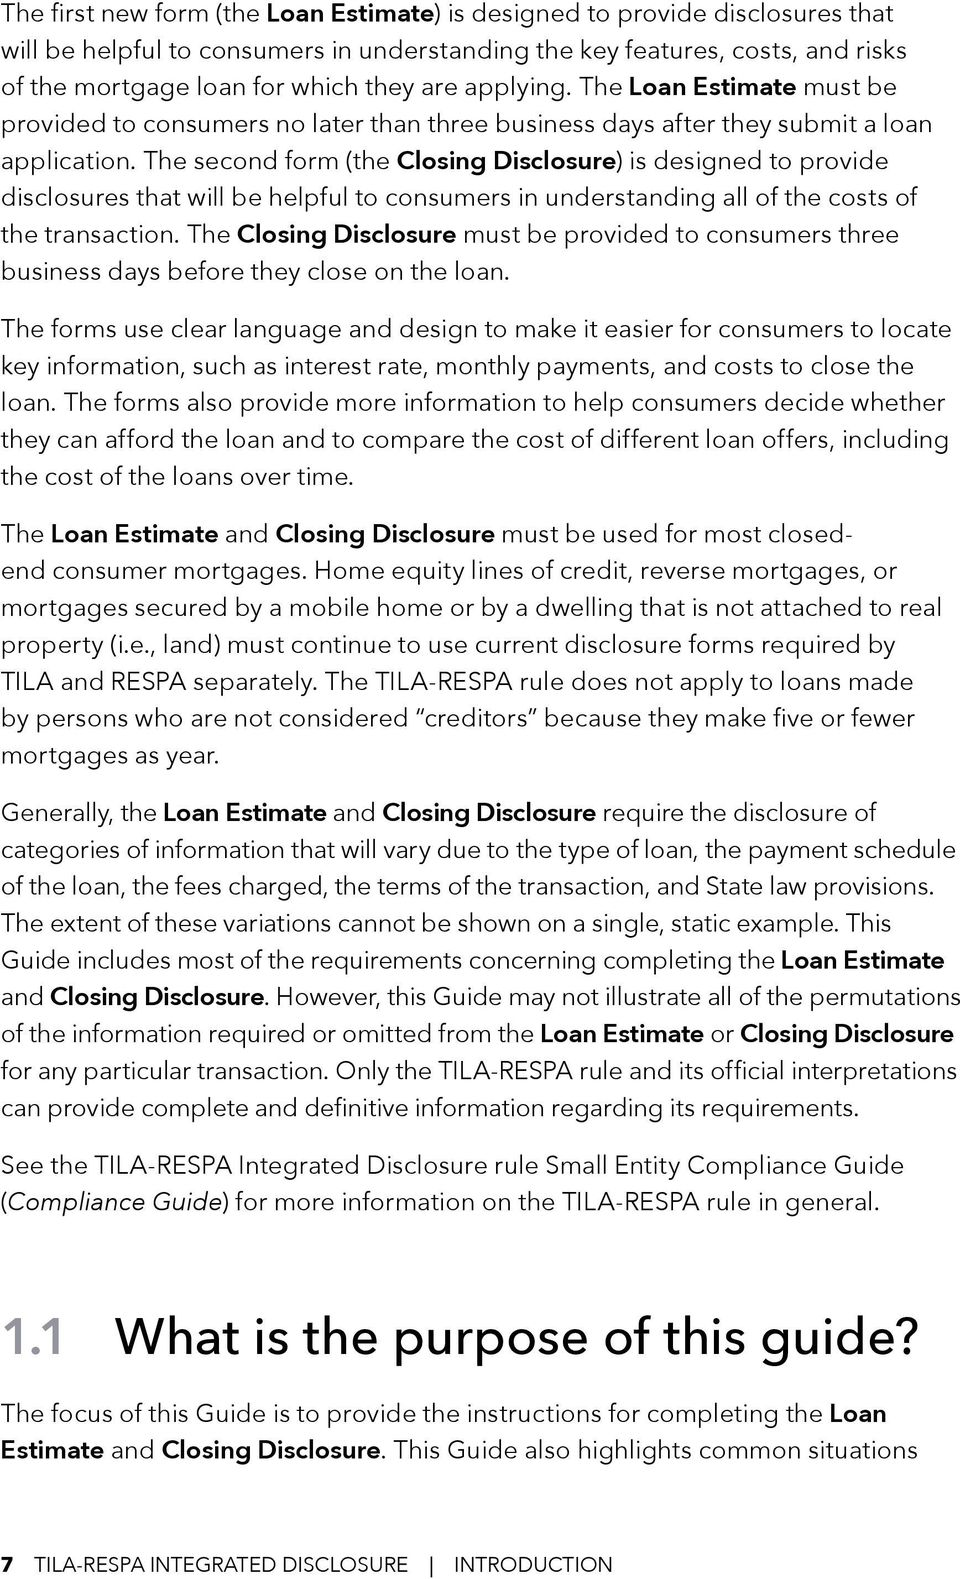 The second form (the Closing Disclosure) is designed to provide disclosures that will be helpful to consumers in understanding all of the costs of the transaction.